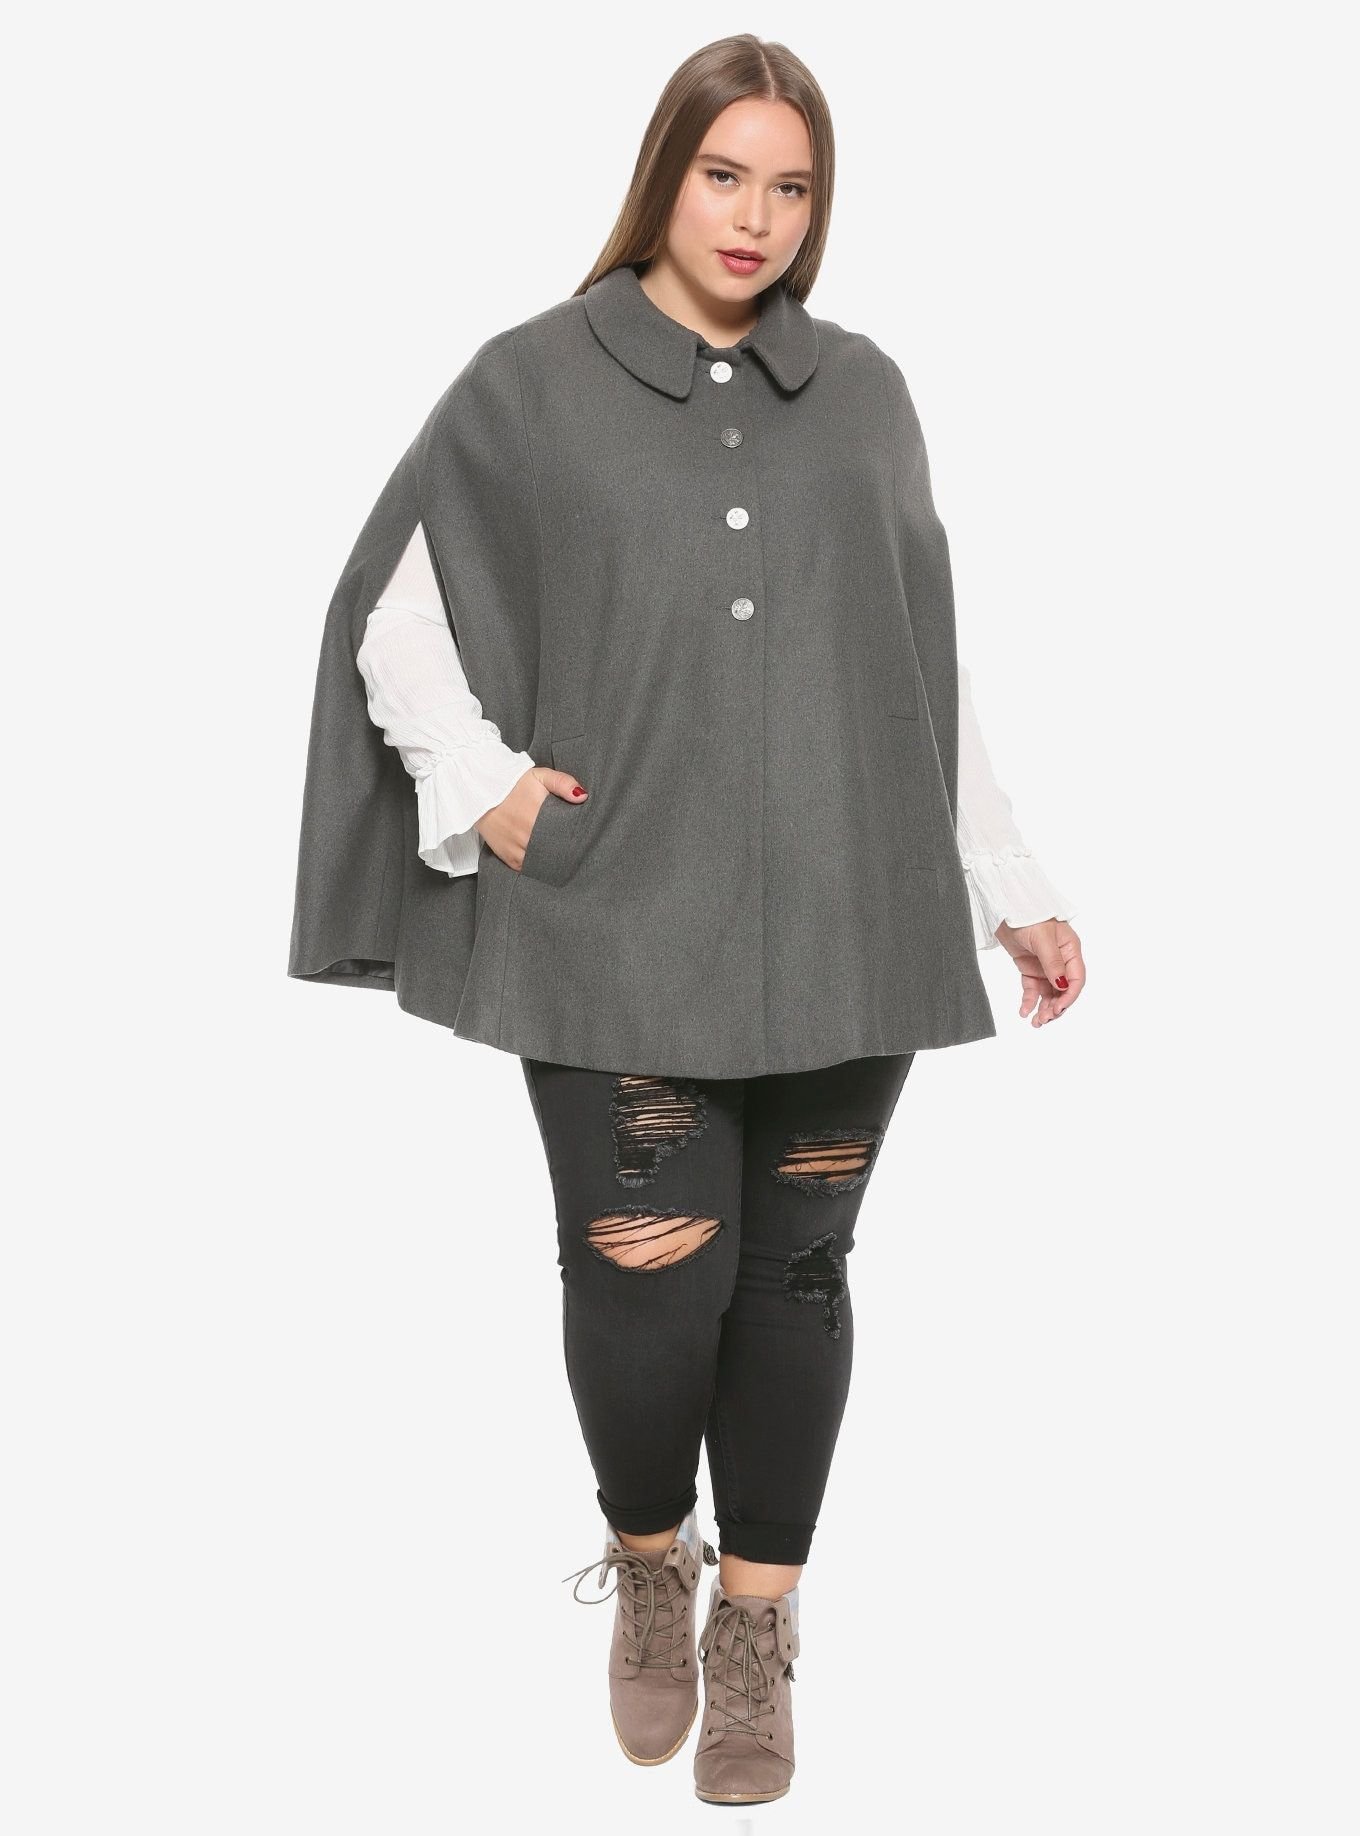 7107339a0a Outlander Girls Cape Plus Size Hot Topic Exclusive